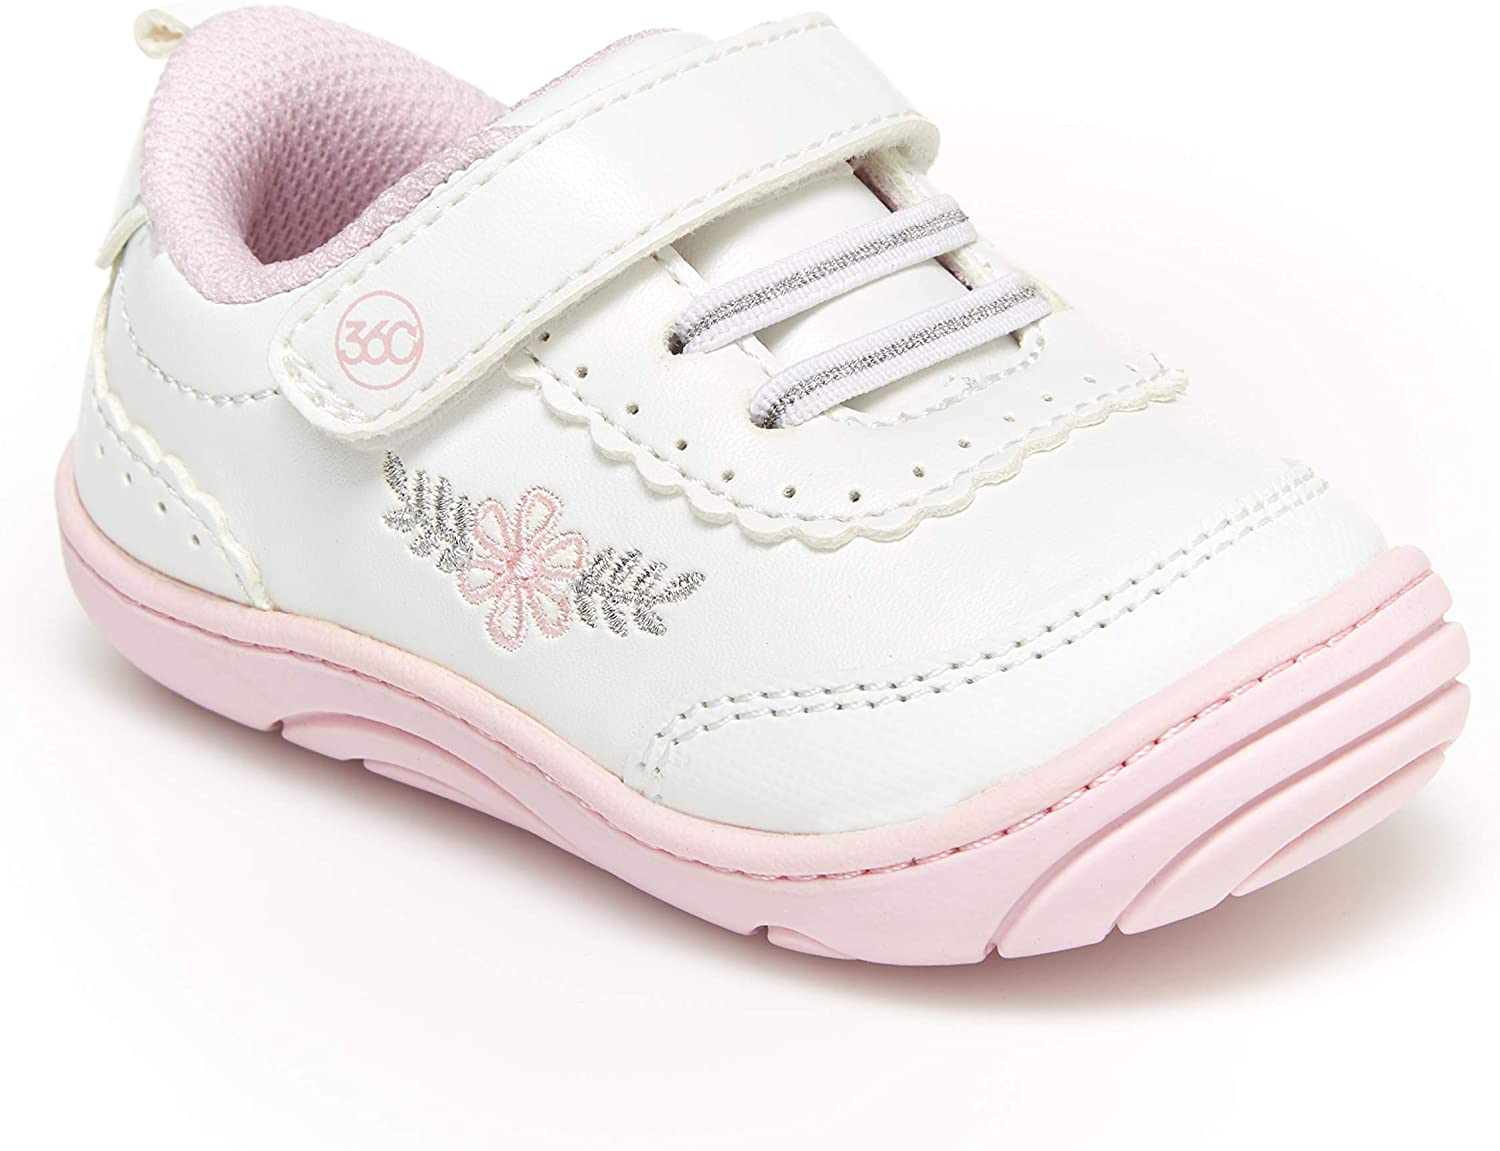 Stride Rite 360 Unisex-Child Dash Anti-Microbial Dual Width Insole Athletic Sneaker